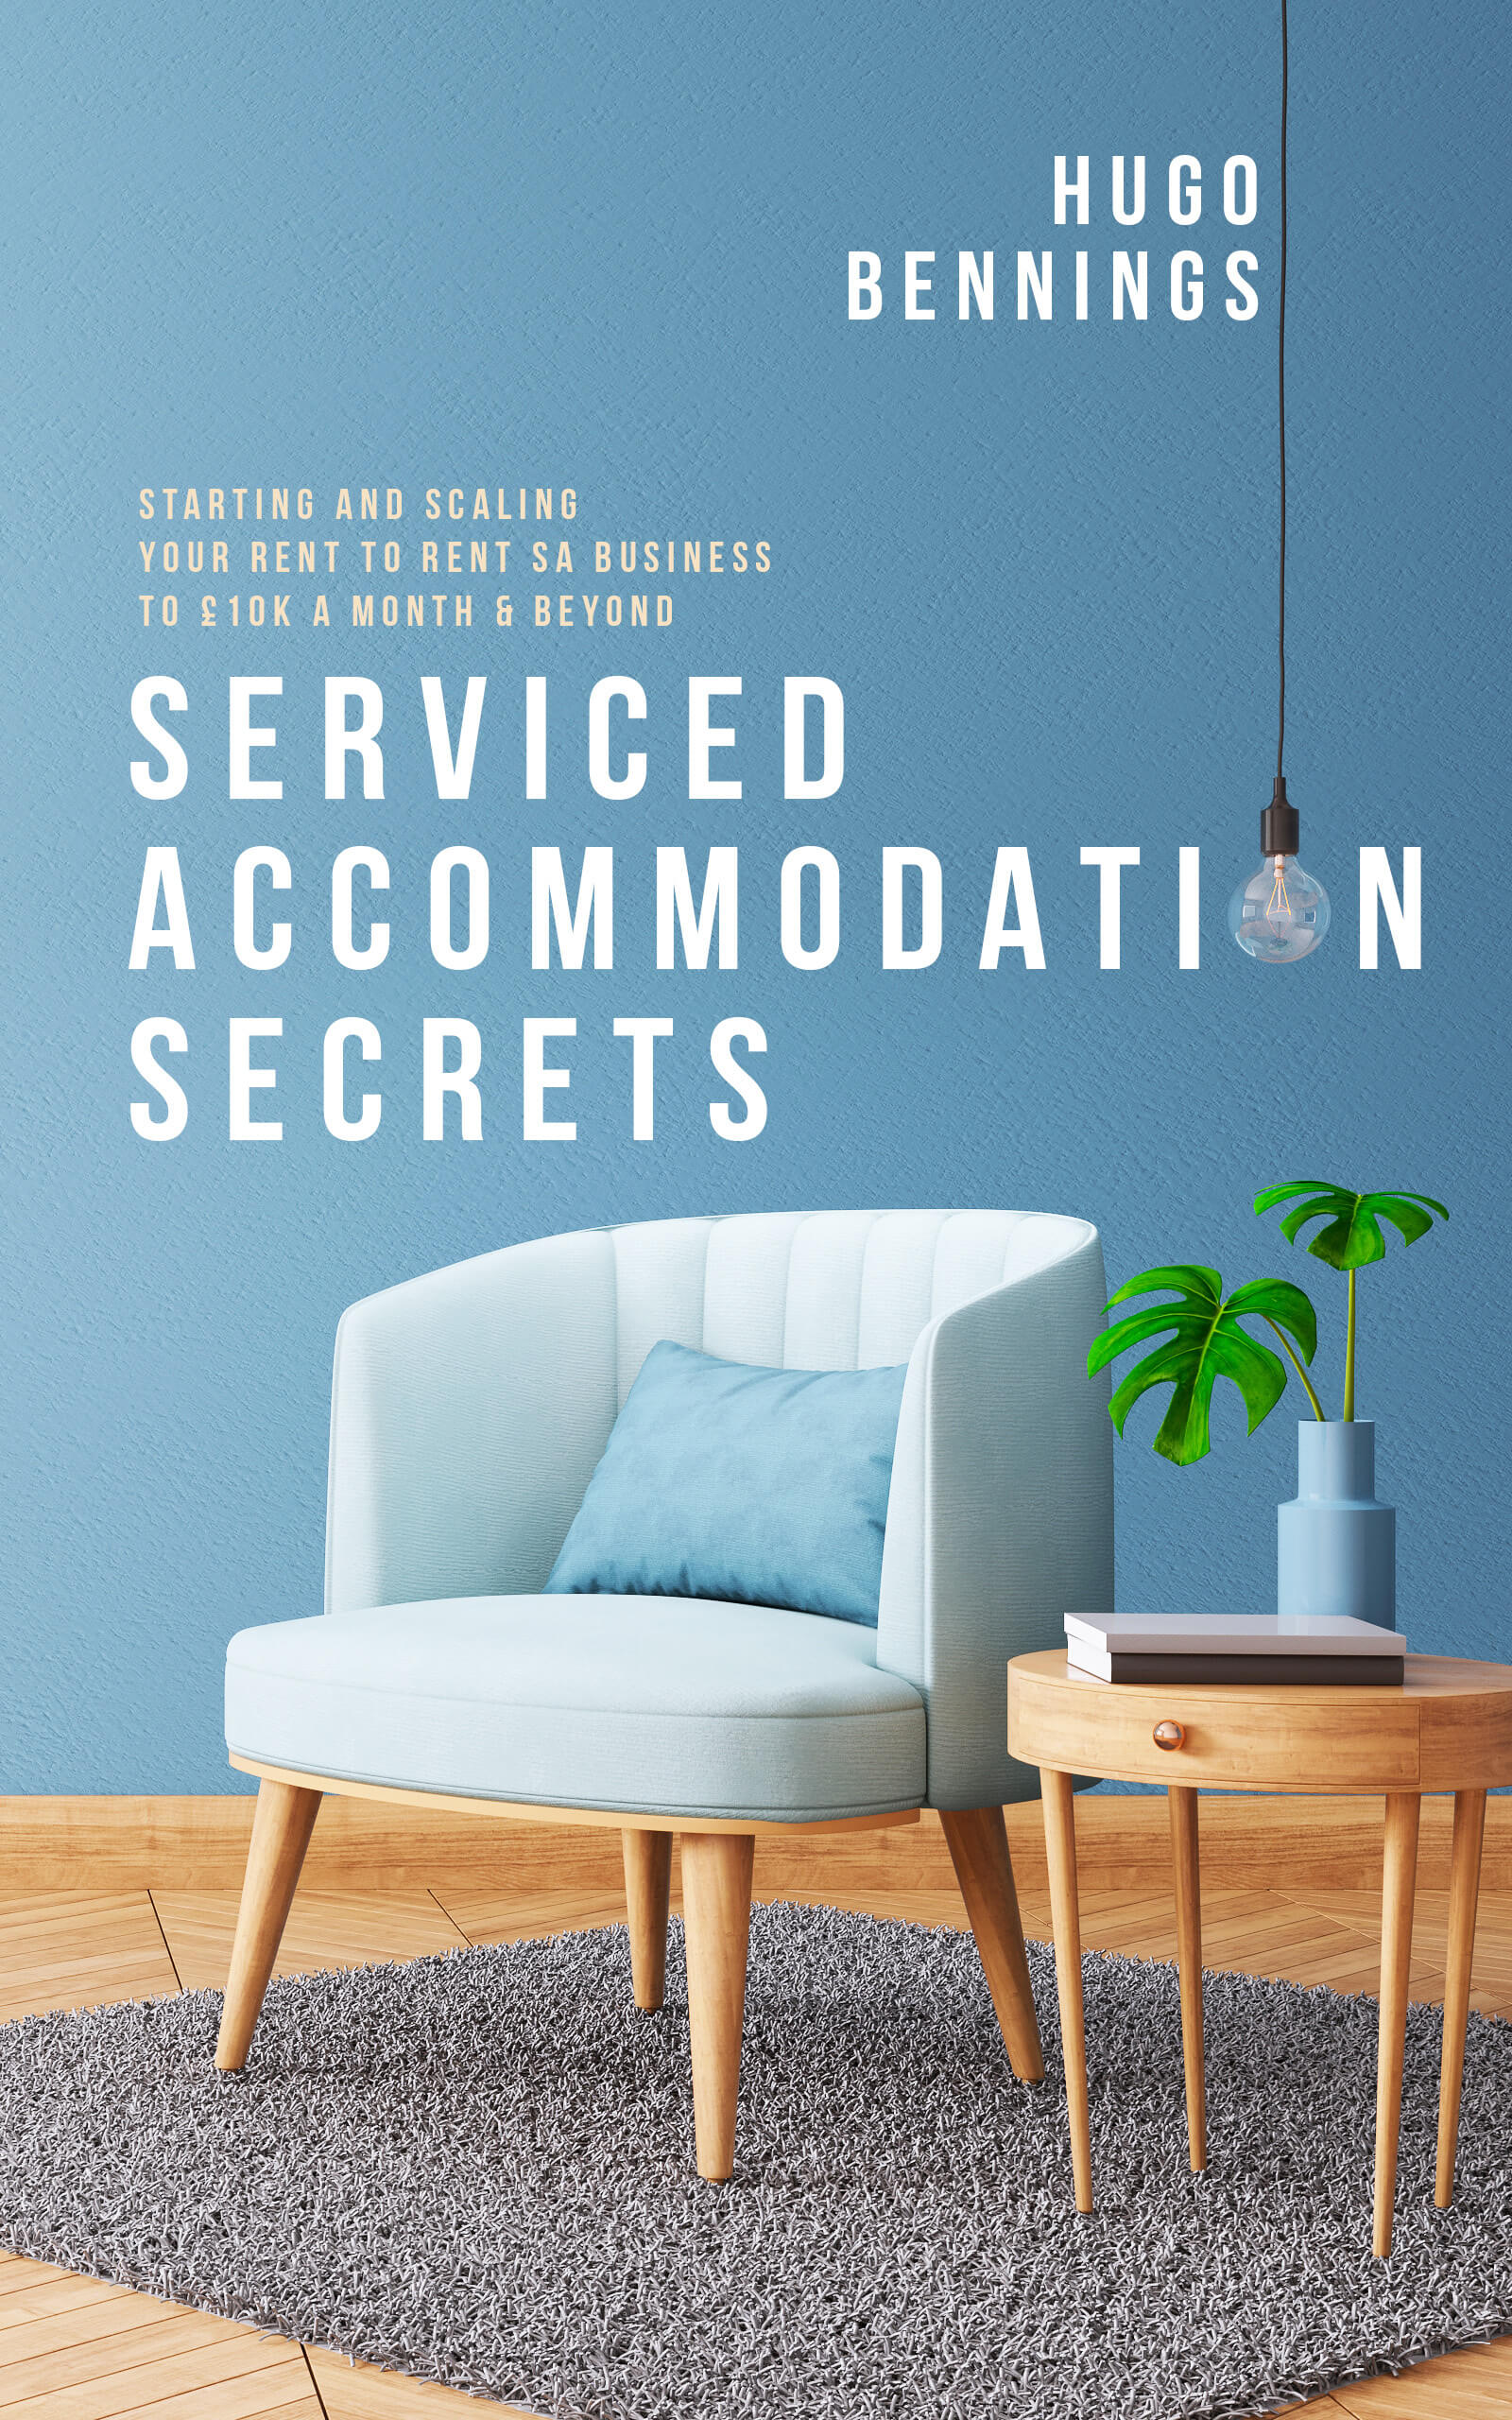 Serviced Accommodation Secrets1 small